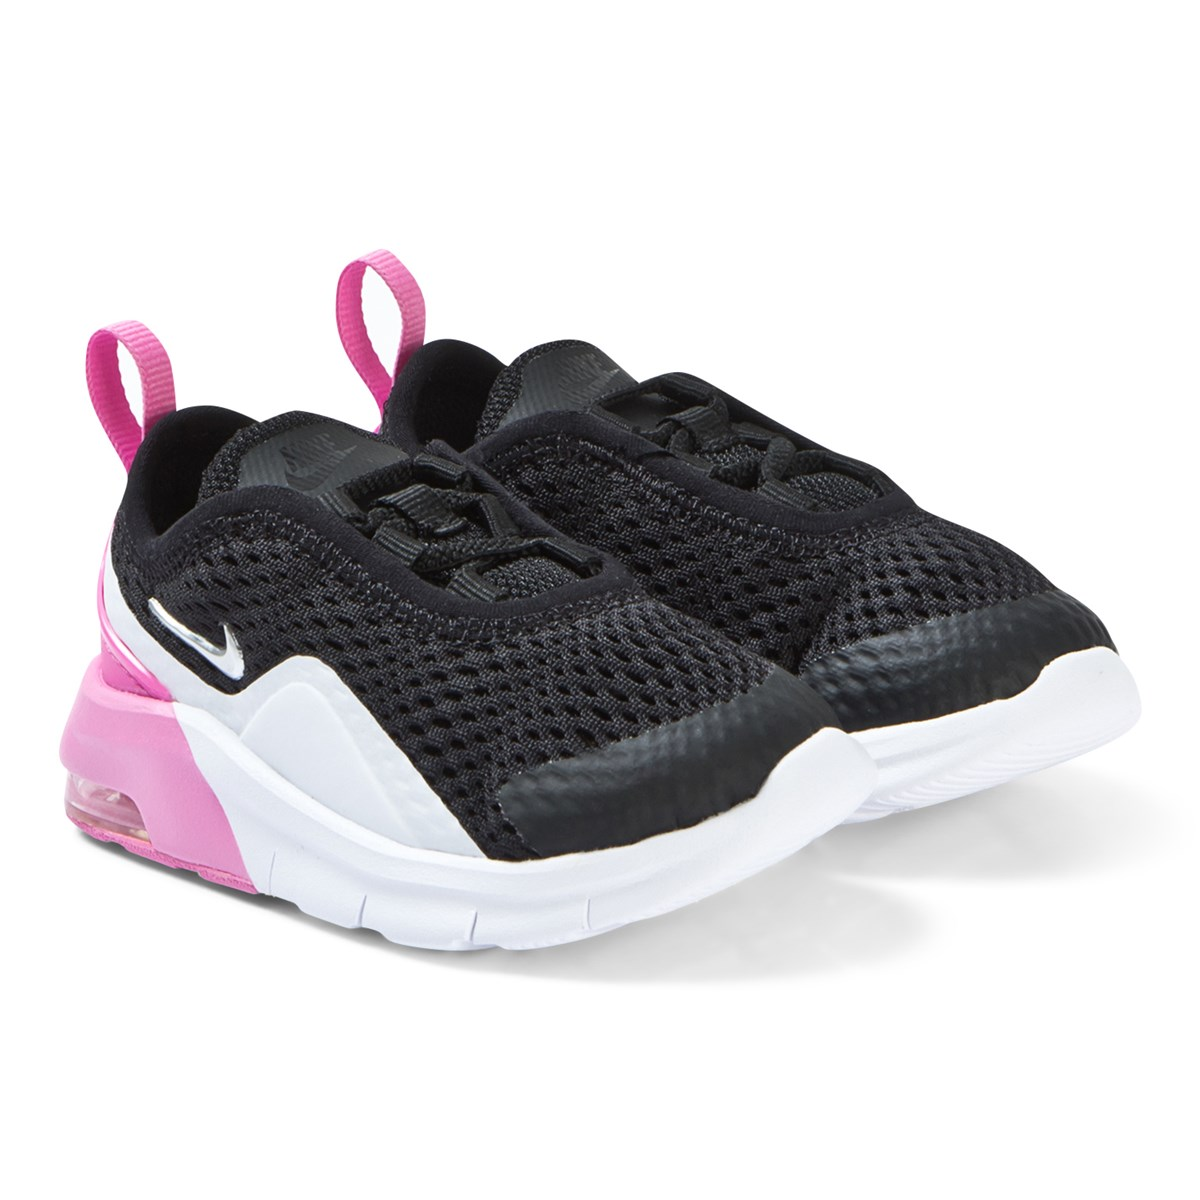 5d33249d7 Nike Pink and Black Nike Air Max Motion 2 Infants Trainers ...